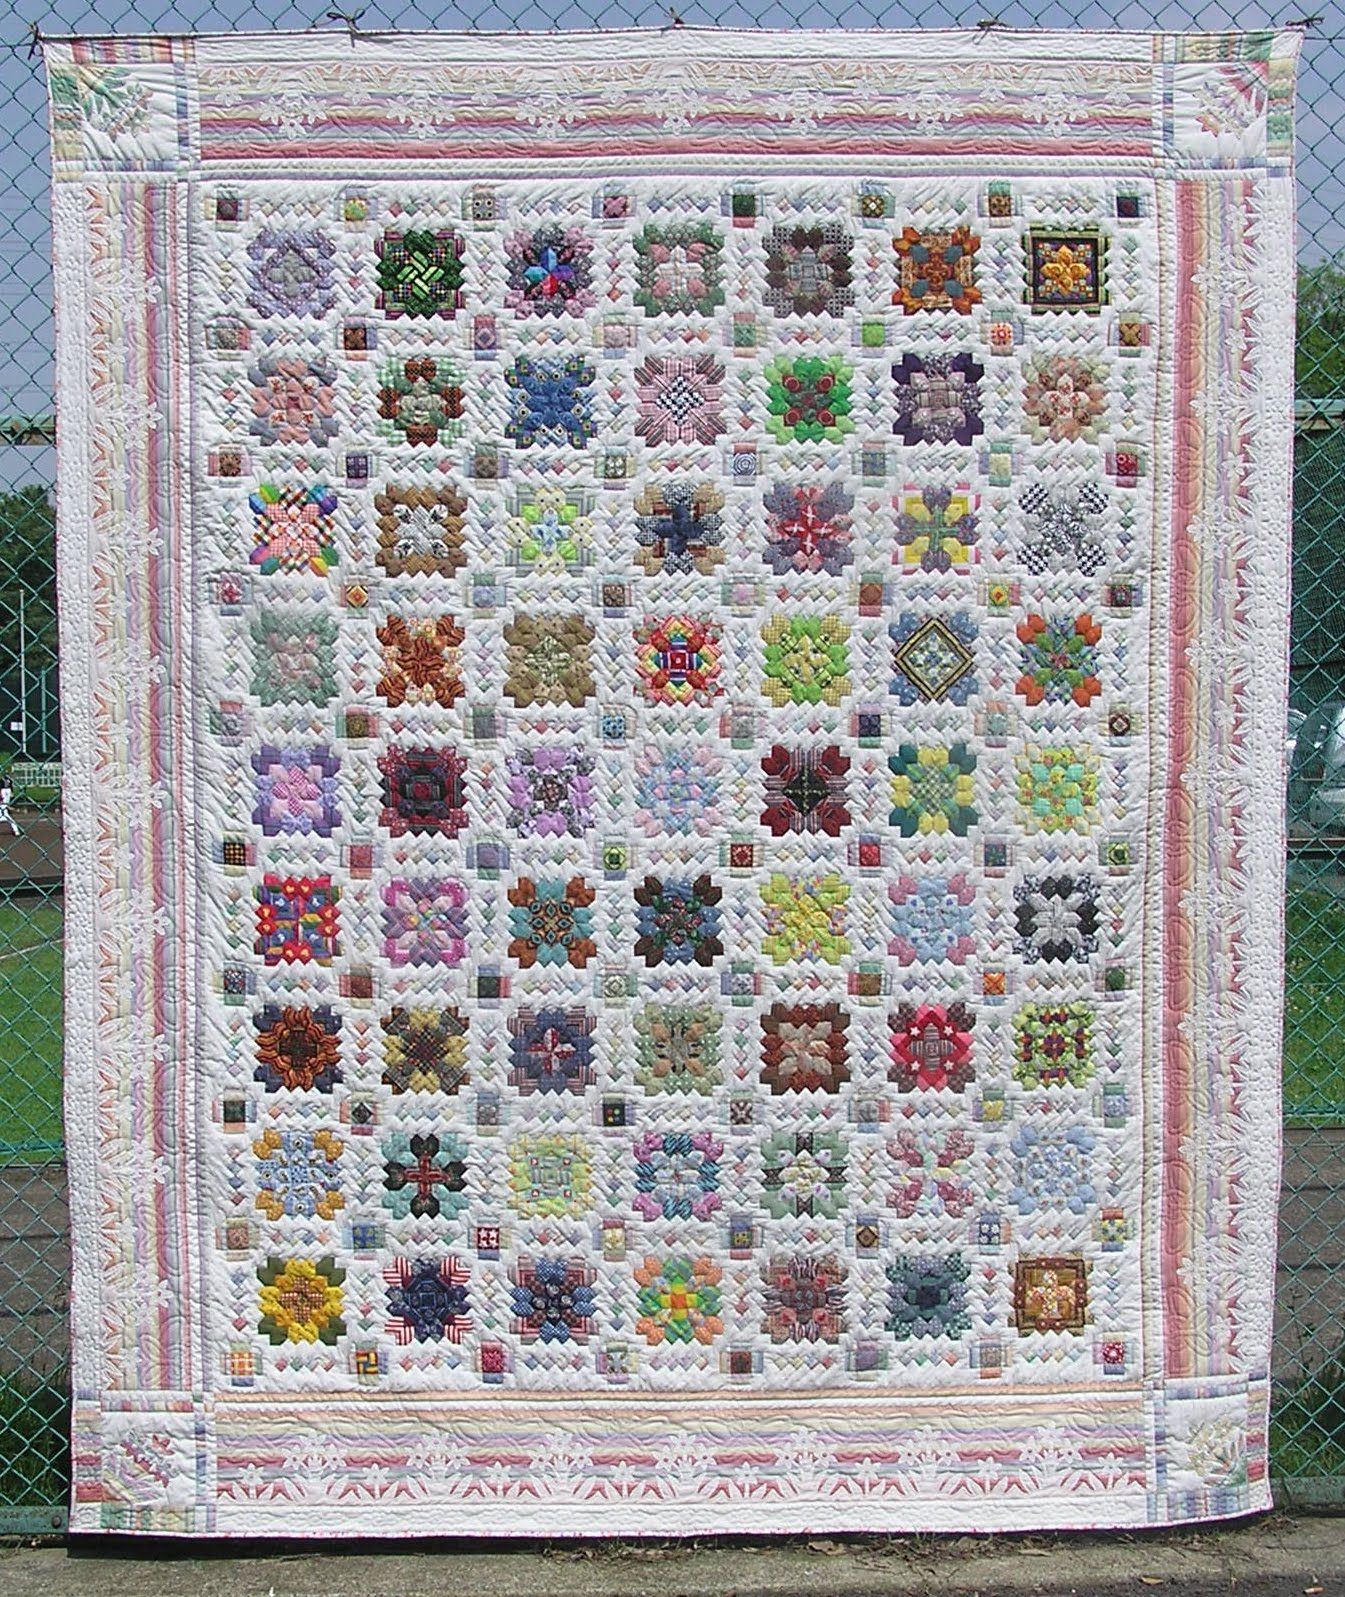 My Quilt Diary Double Crossed meets Bloggers Quilt Festival